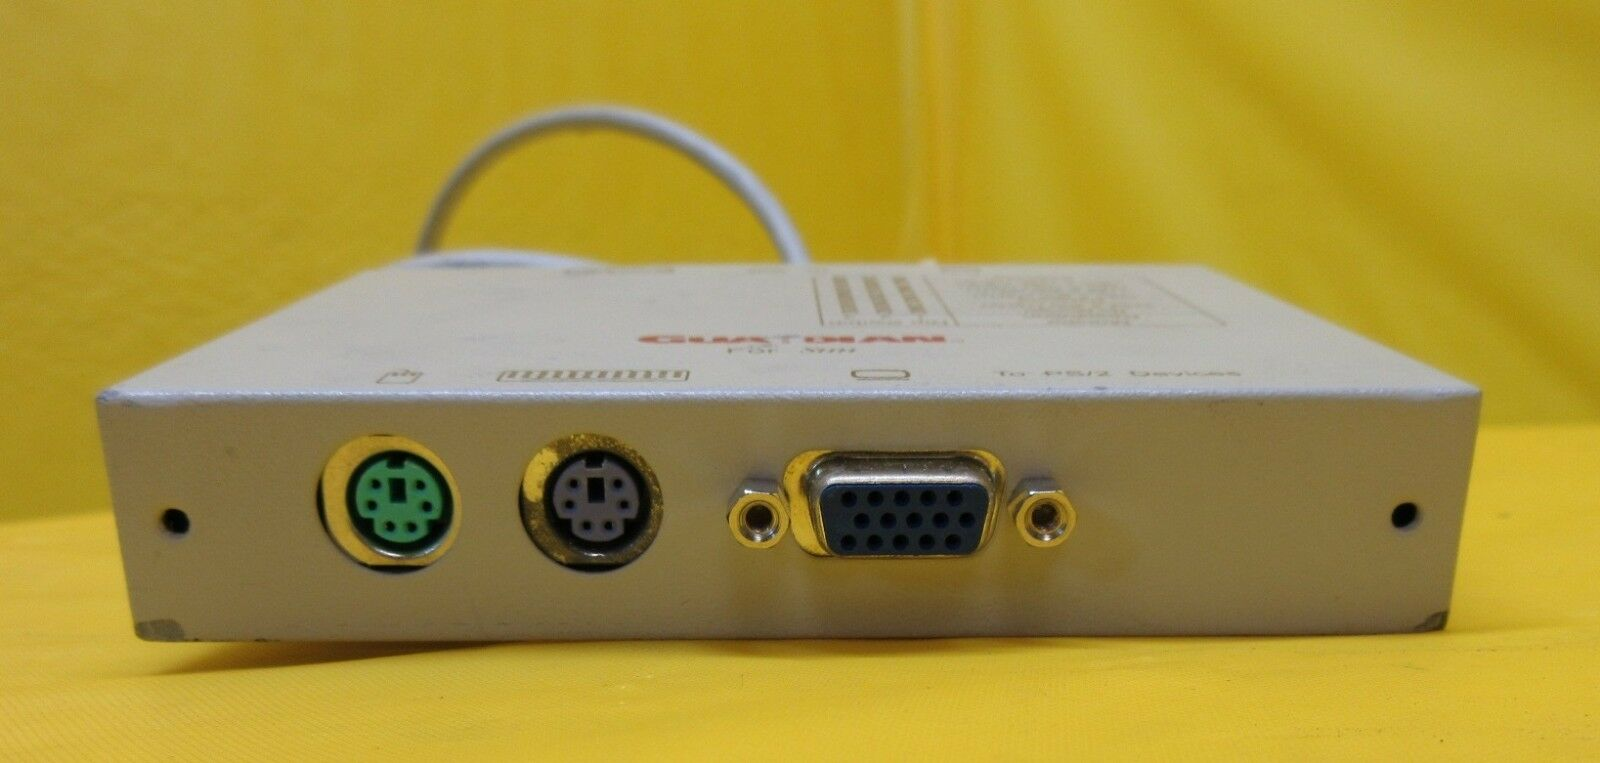 Raritan APSSUN KVM Converter GUARDIAN Used Working